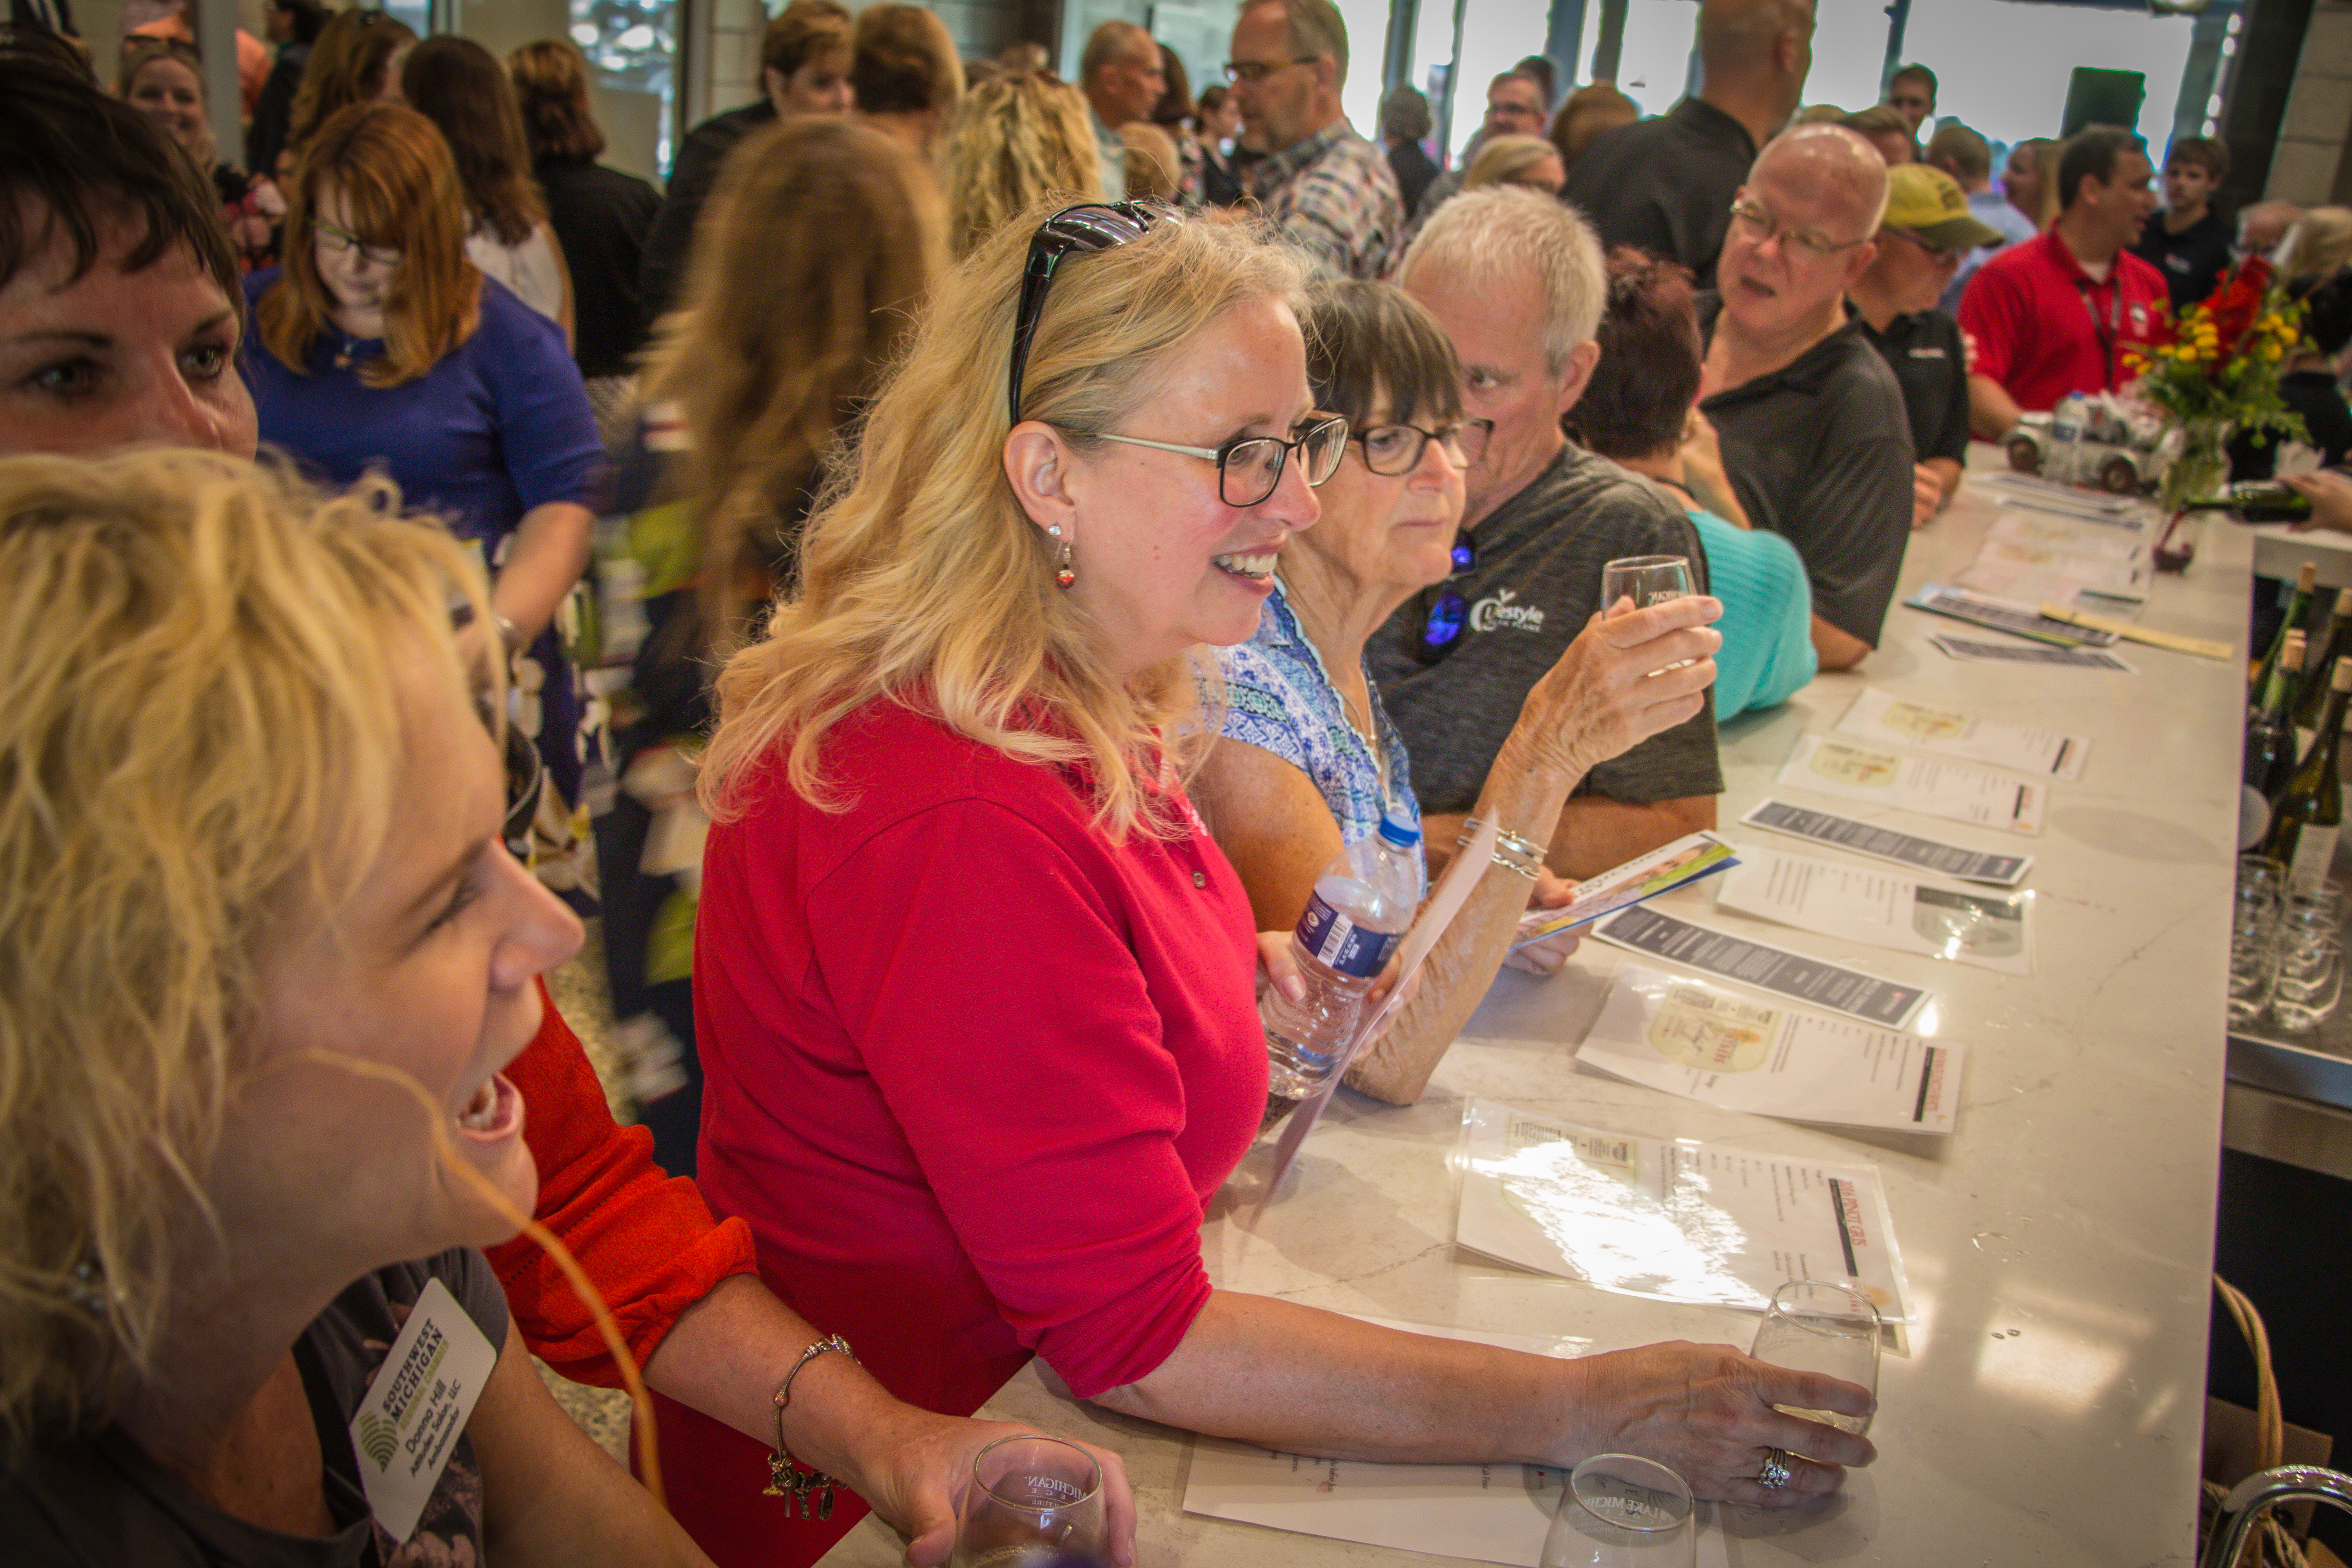 An image showing approximately 30 people at the opening for the Welch Center for Wine & Viticulture Technology. A woman with yellow hair and a red shirt on is holding her glass out to ask for more wine.